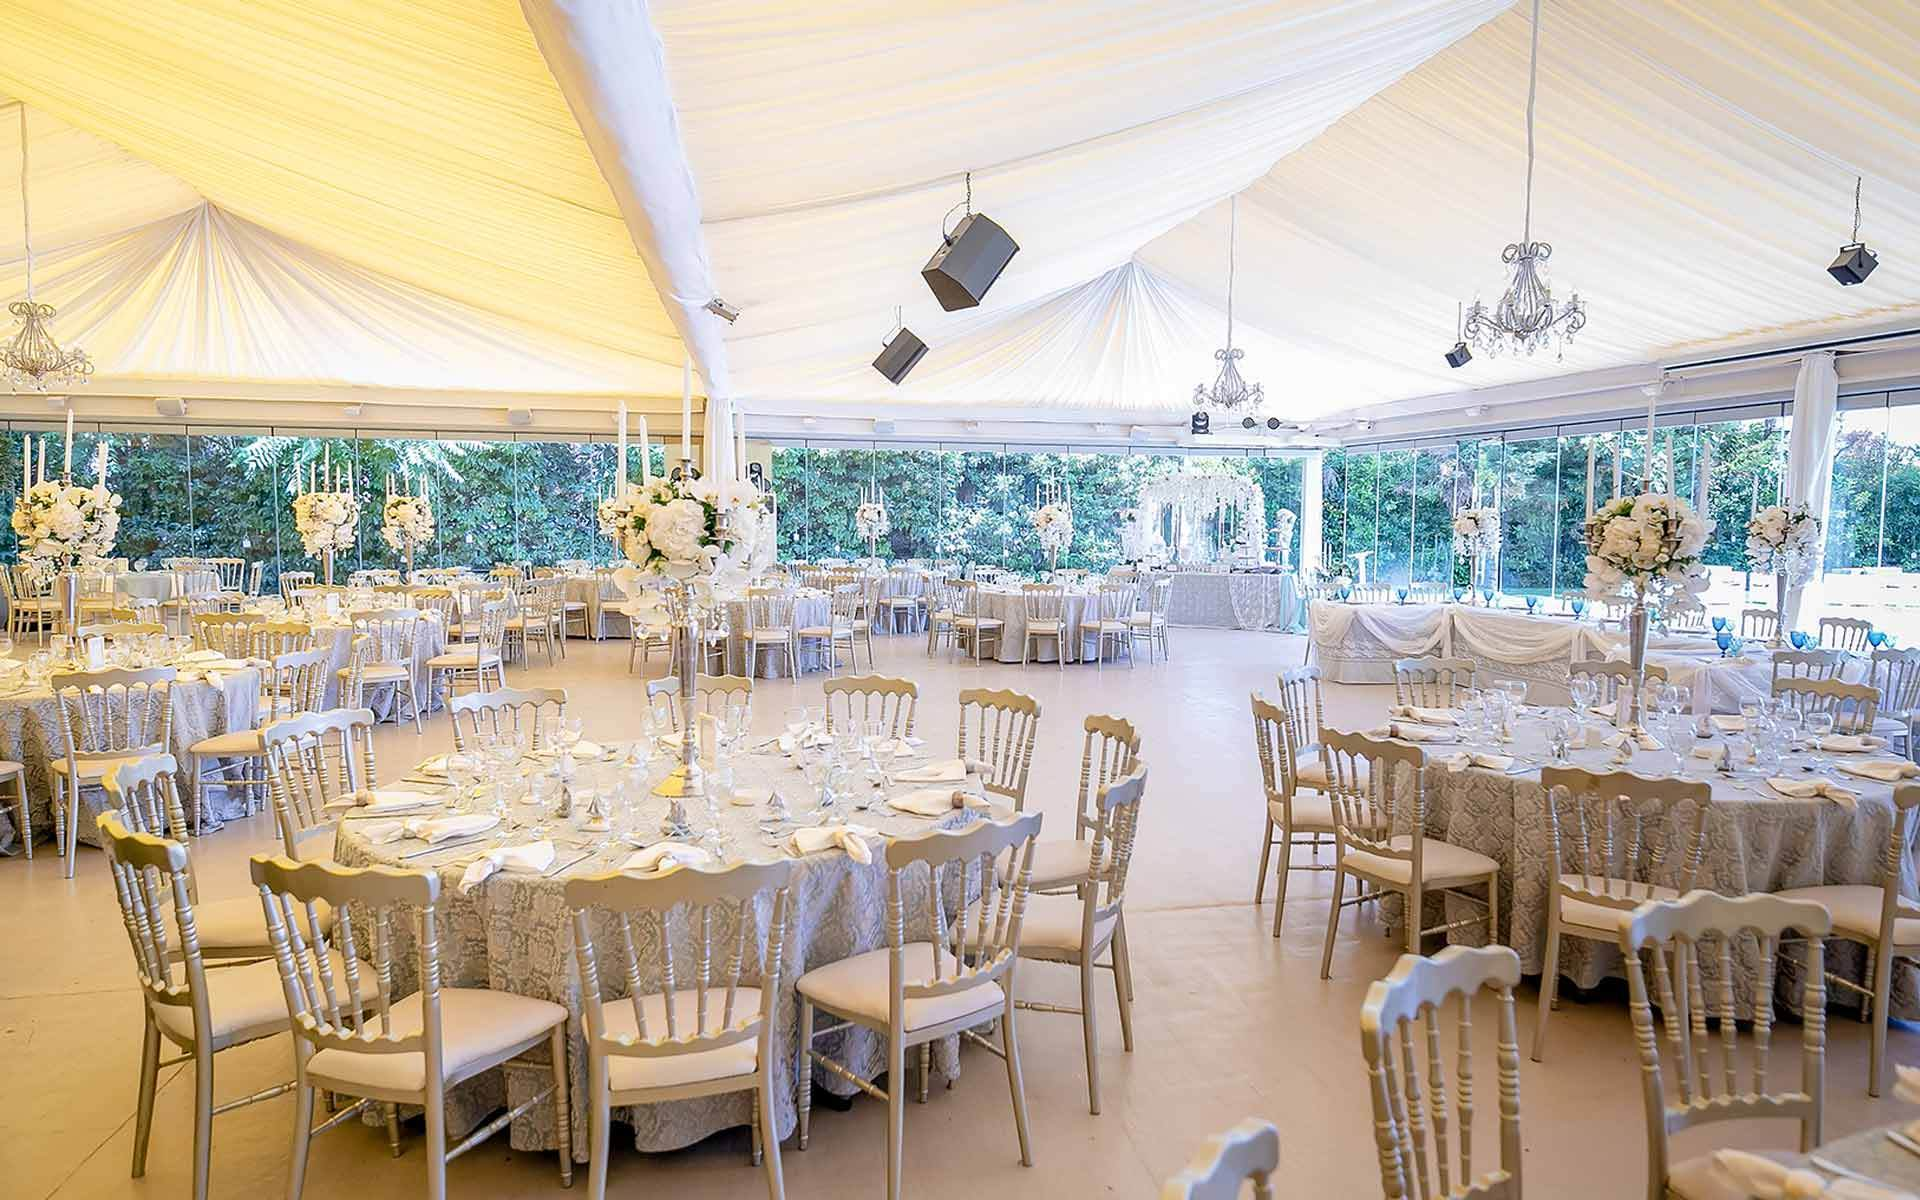 Glamorous-Wedding-candelabras-Centerpieces-with-orchids-at-erofili-reception-venue